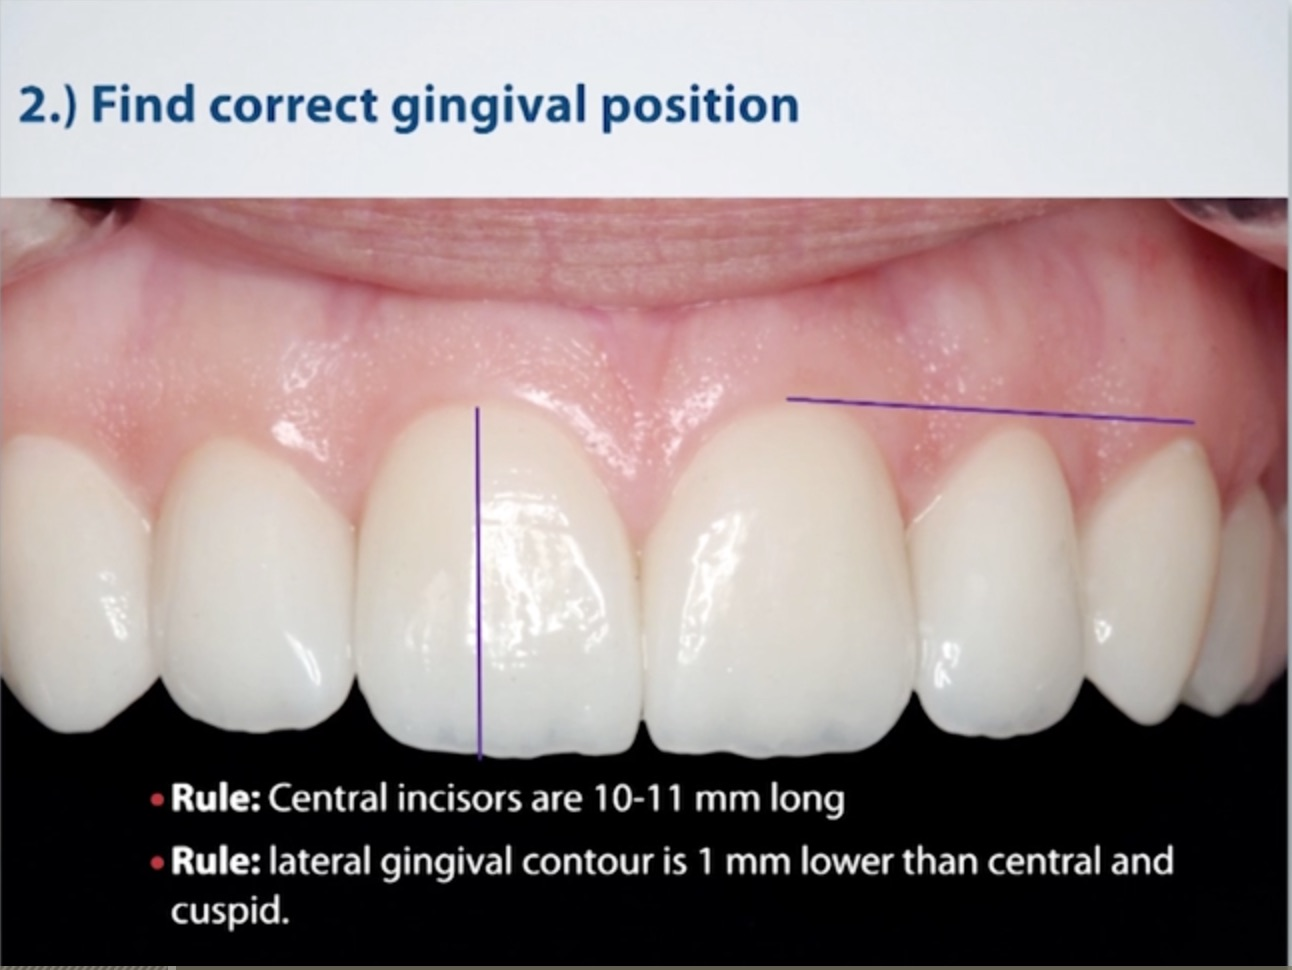 Correct Gingival Position